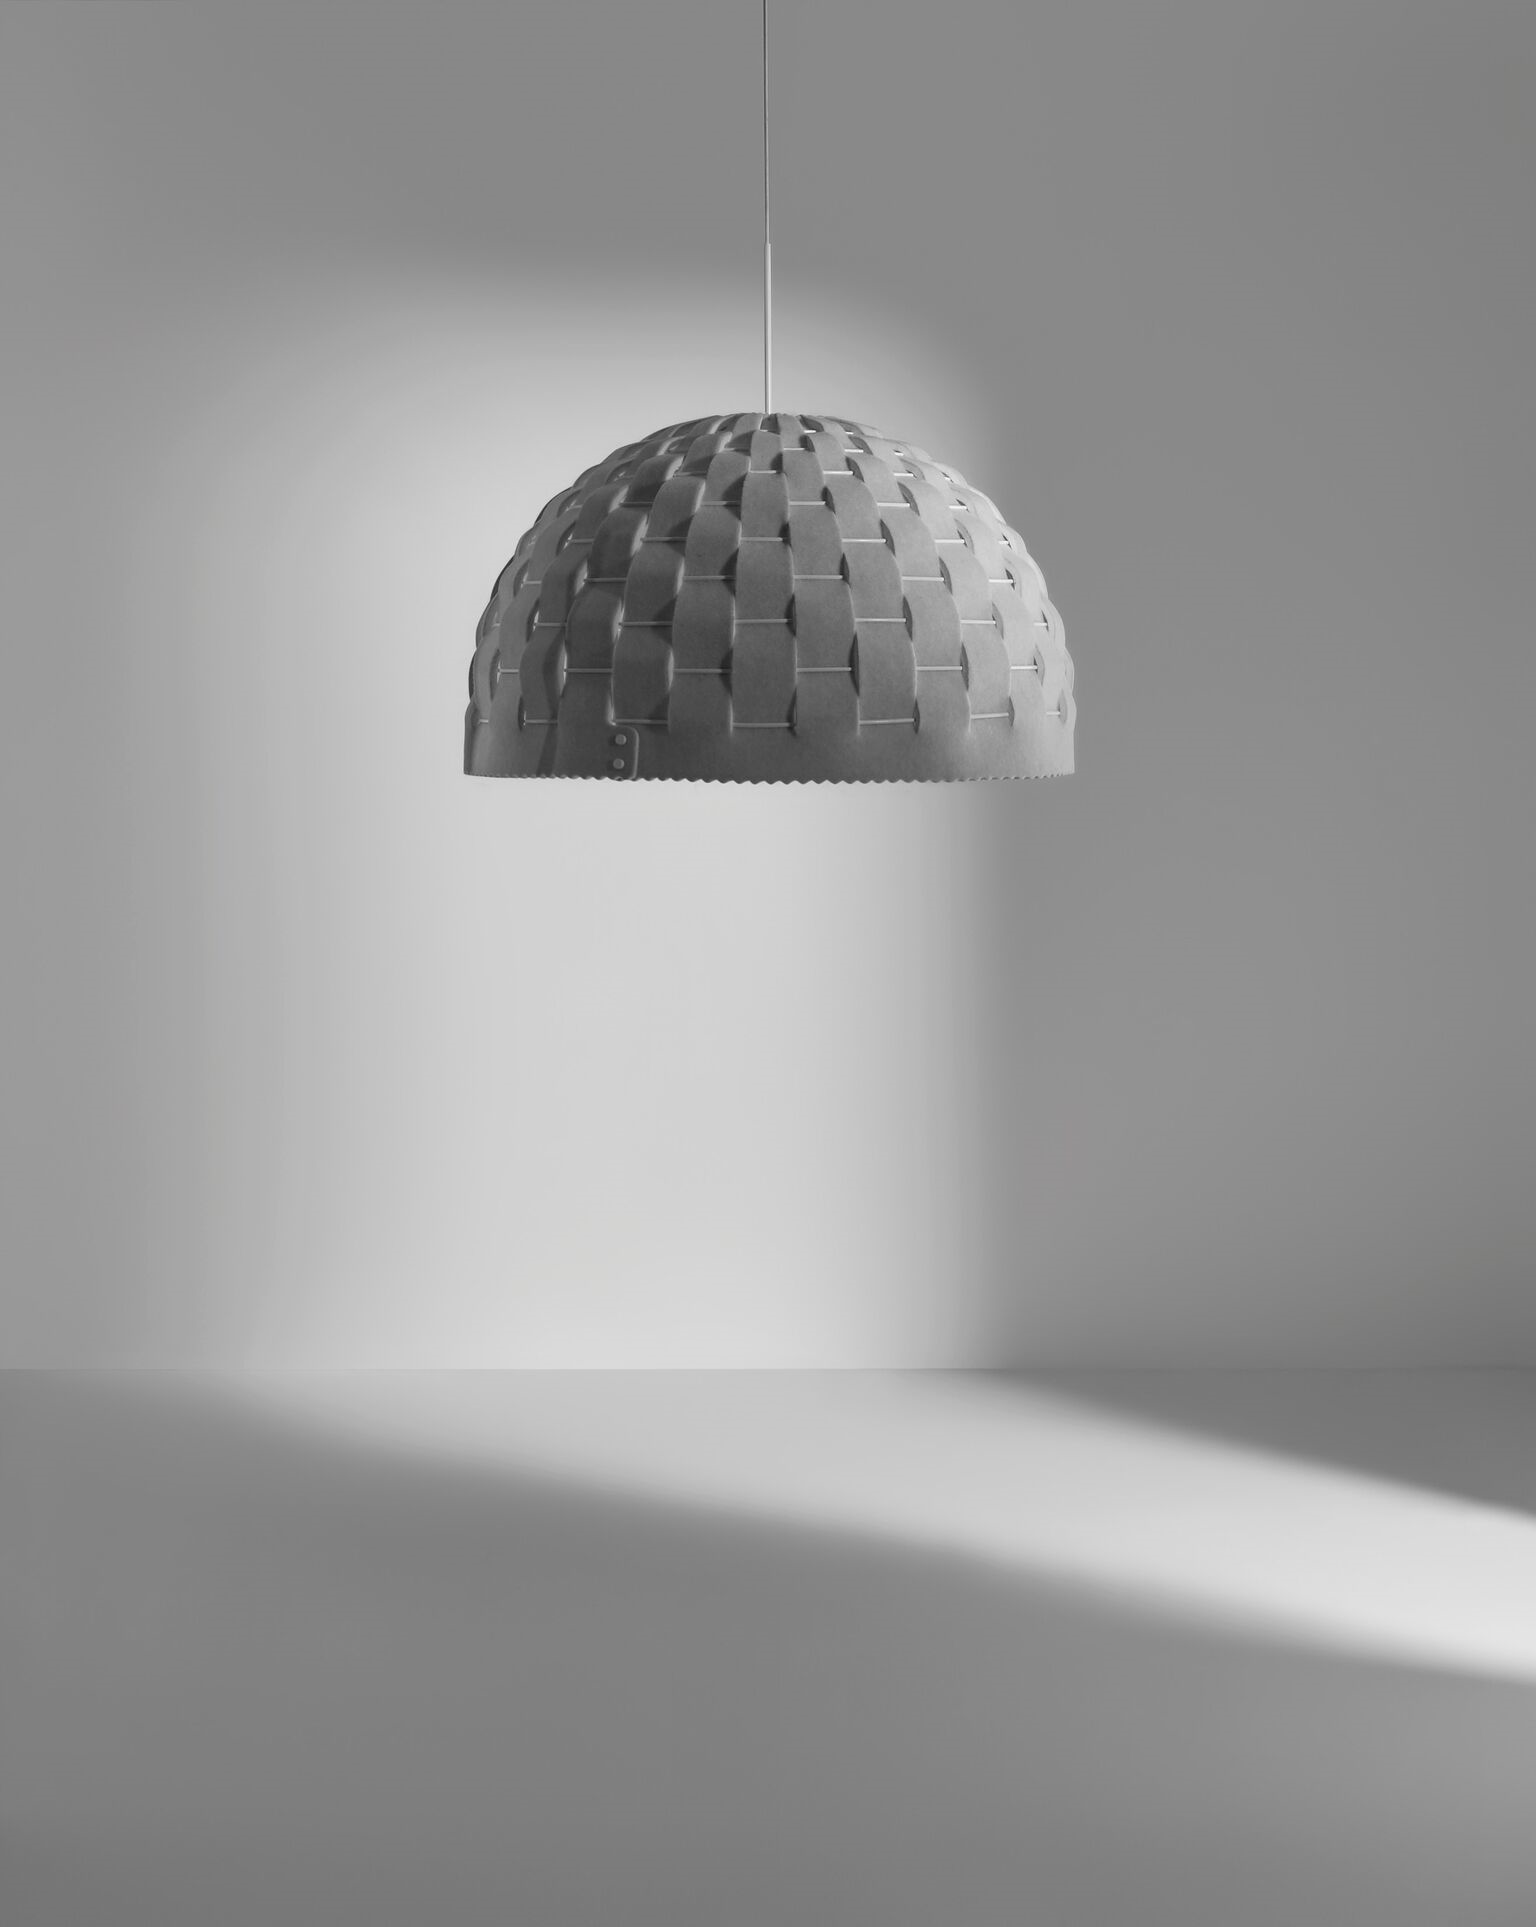 Melbourne based lighting designer Luke Mills of Lumil